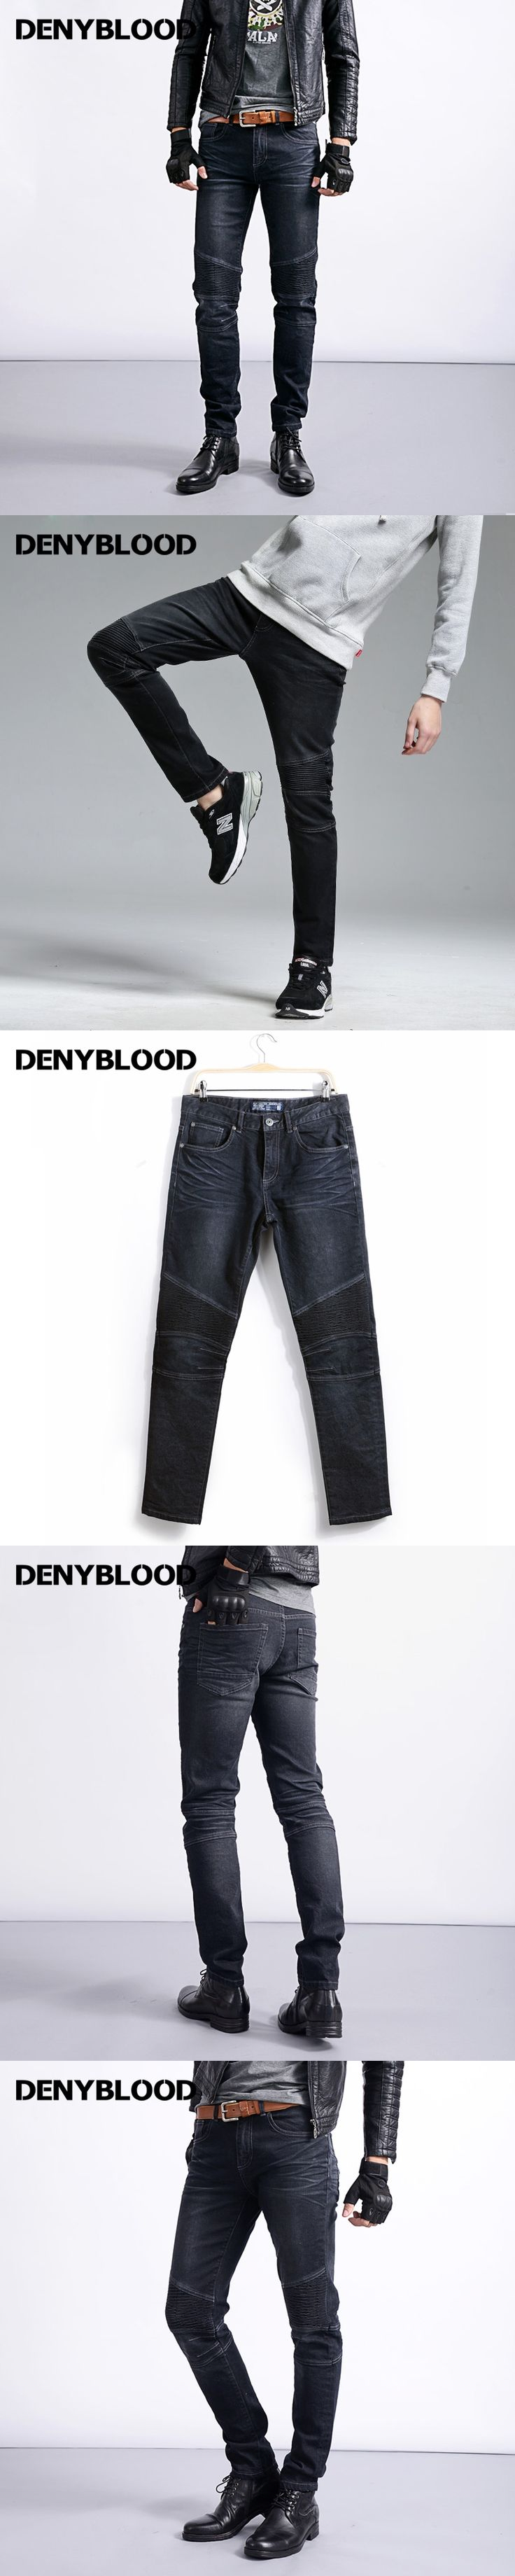 2017 Mens Stretch Denim Cargo Jeans with Pleated Men Slim Straight Skinny Jeans cuttings Darked Wash Jeans Casual Pants 169066